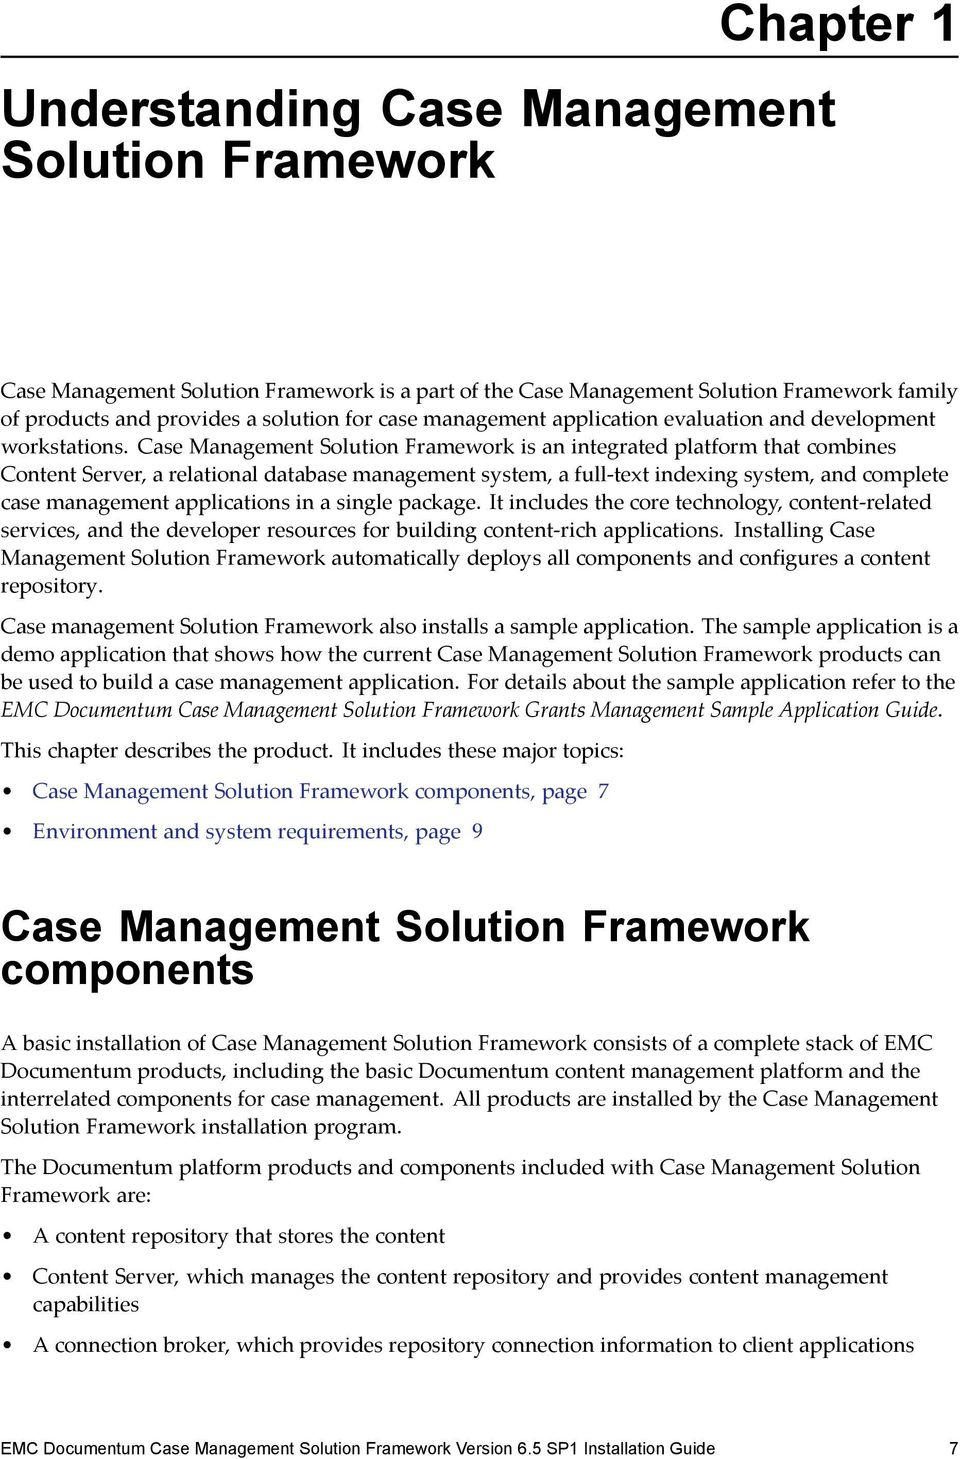 Case Management Solution Framework is an integrated platform that combines Content Server, a relational database management system, a full-text indexing system, and complete case management